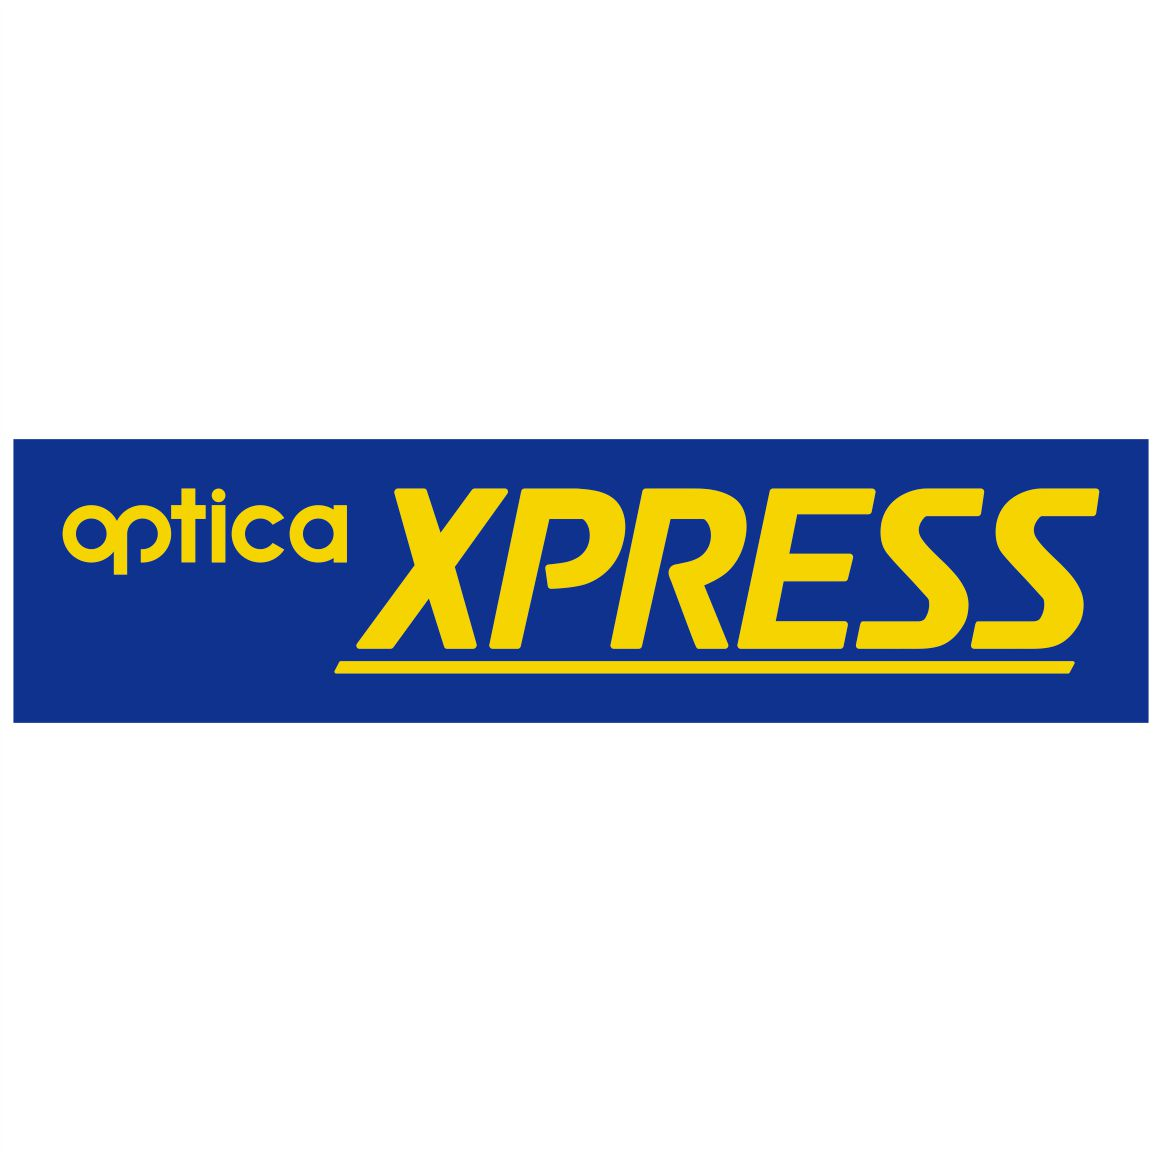 Descargar Logo Vectorizado optica xpress Gratis